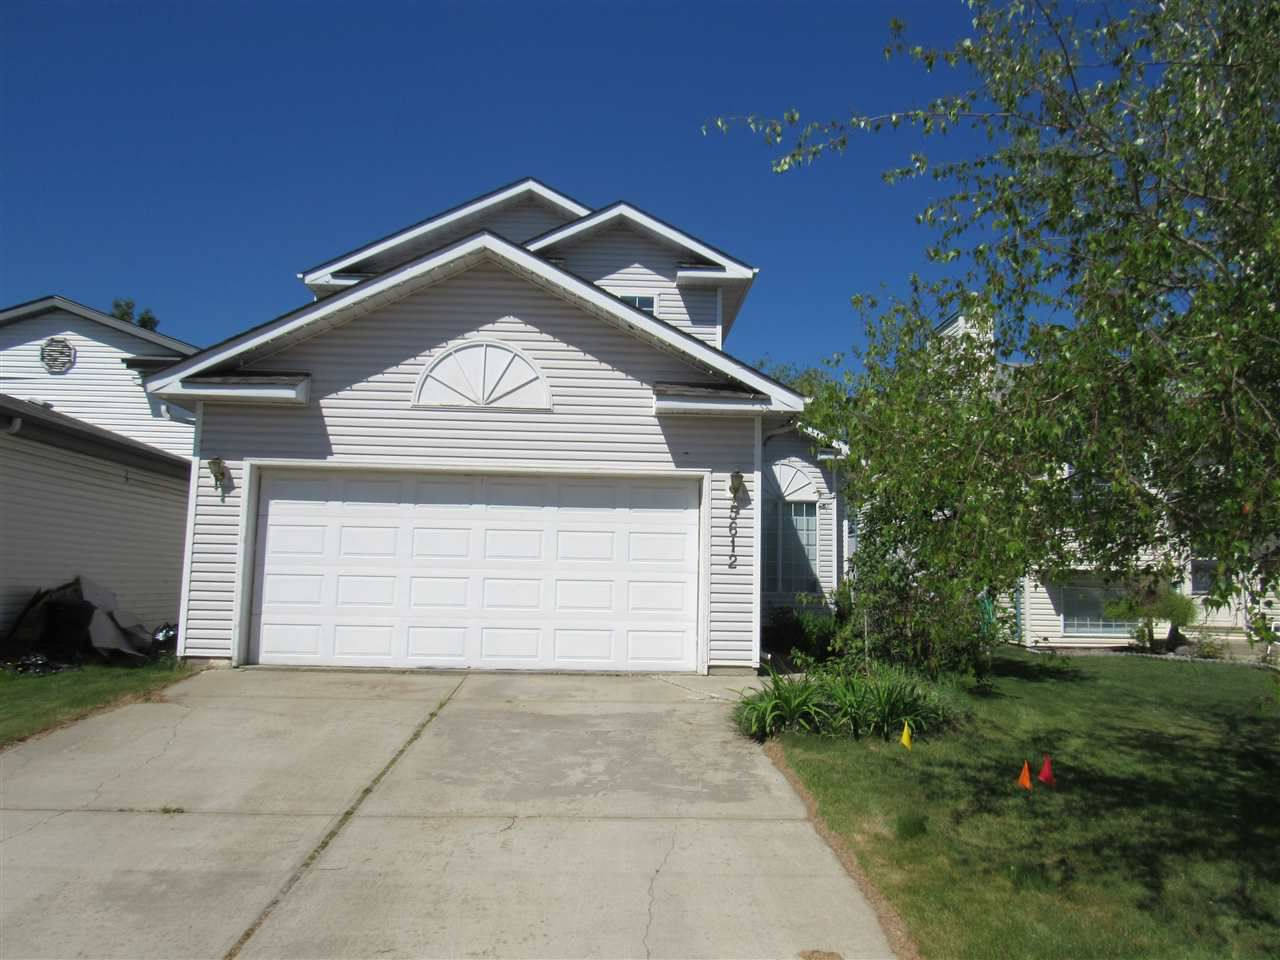 Main Photo: 5612 190A Street in Edmonton: Zone 20 House for sale : MLS®# E4133624